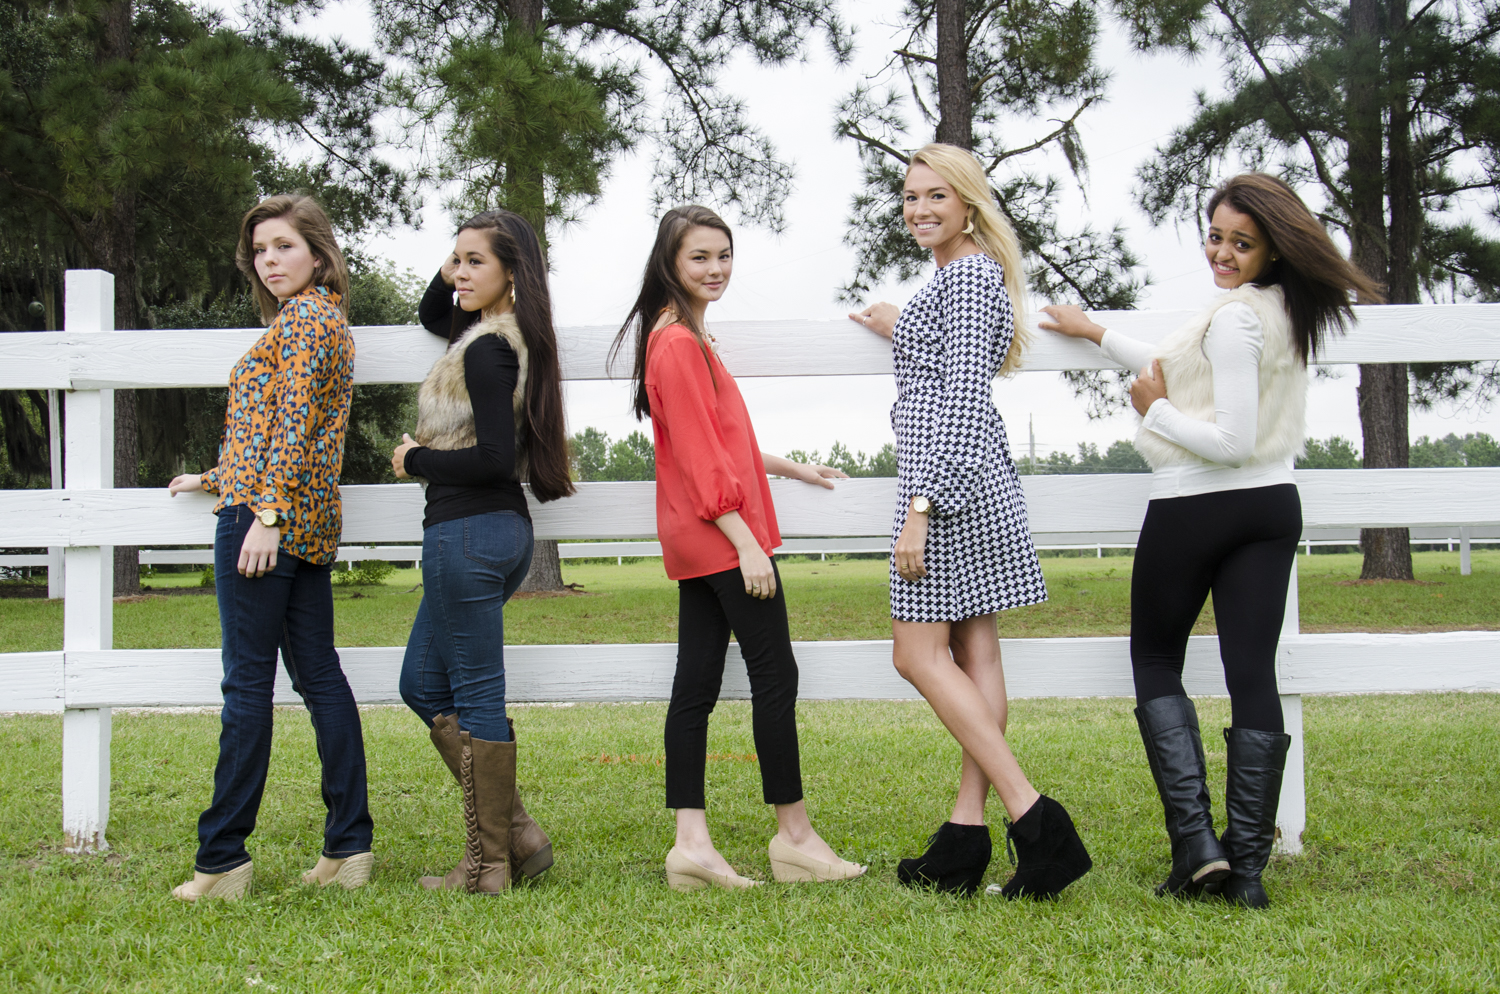 Clothing: Threads Boutique Models: Kaia Egan, Kayley Jacobs, Anna Heritage, Hannah Leverette, Kimberly Jacobs Location: Red Gate - Savannah, GA